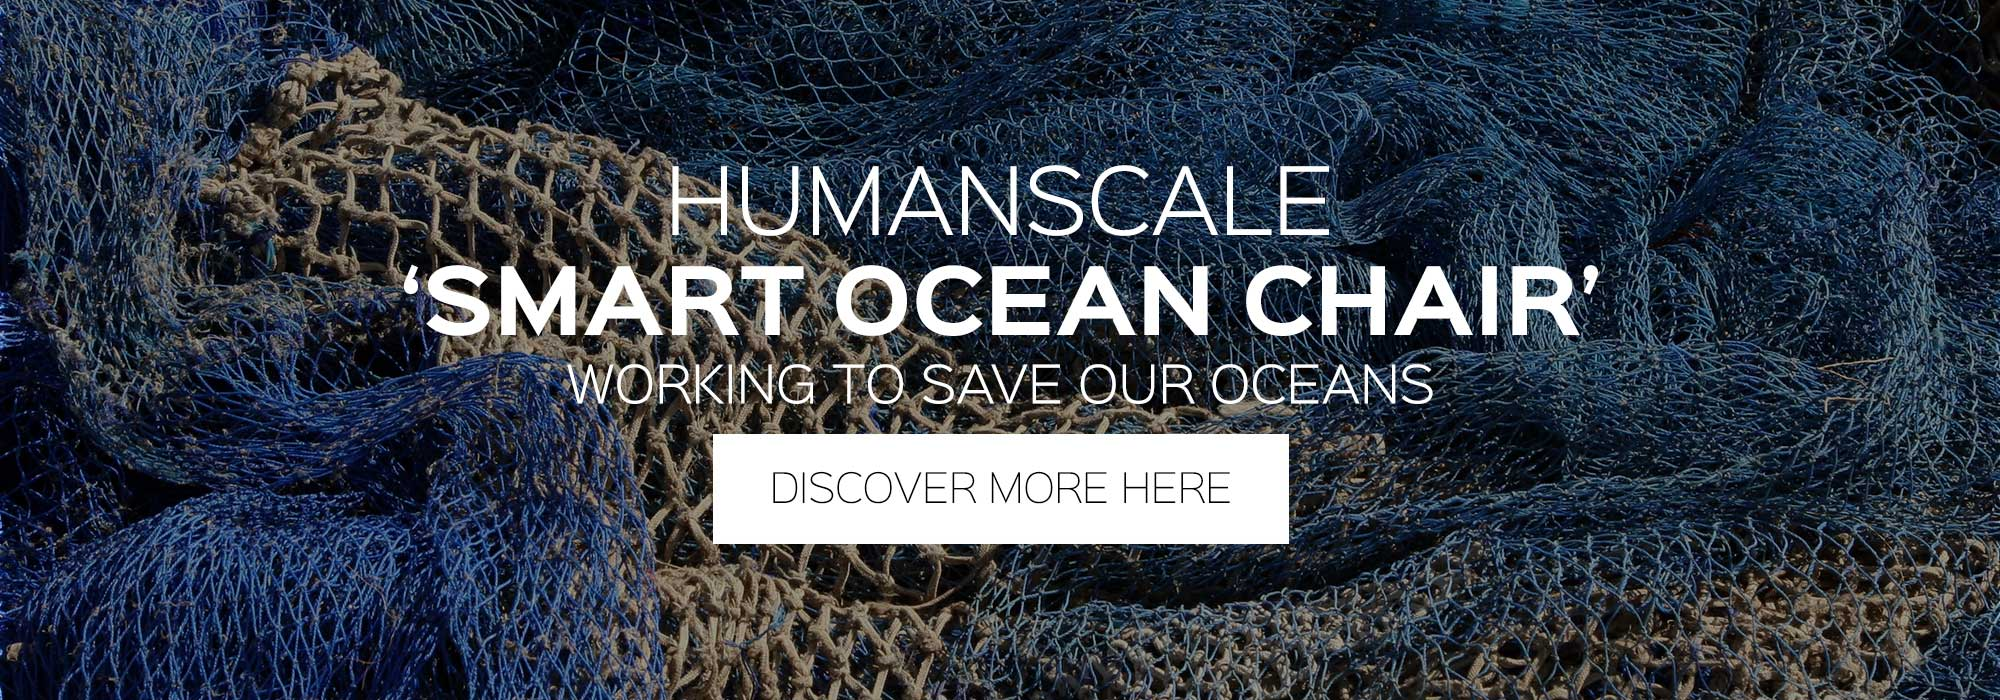 Humanscale Smart Ocean Chair